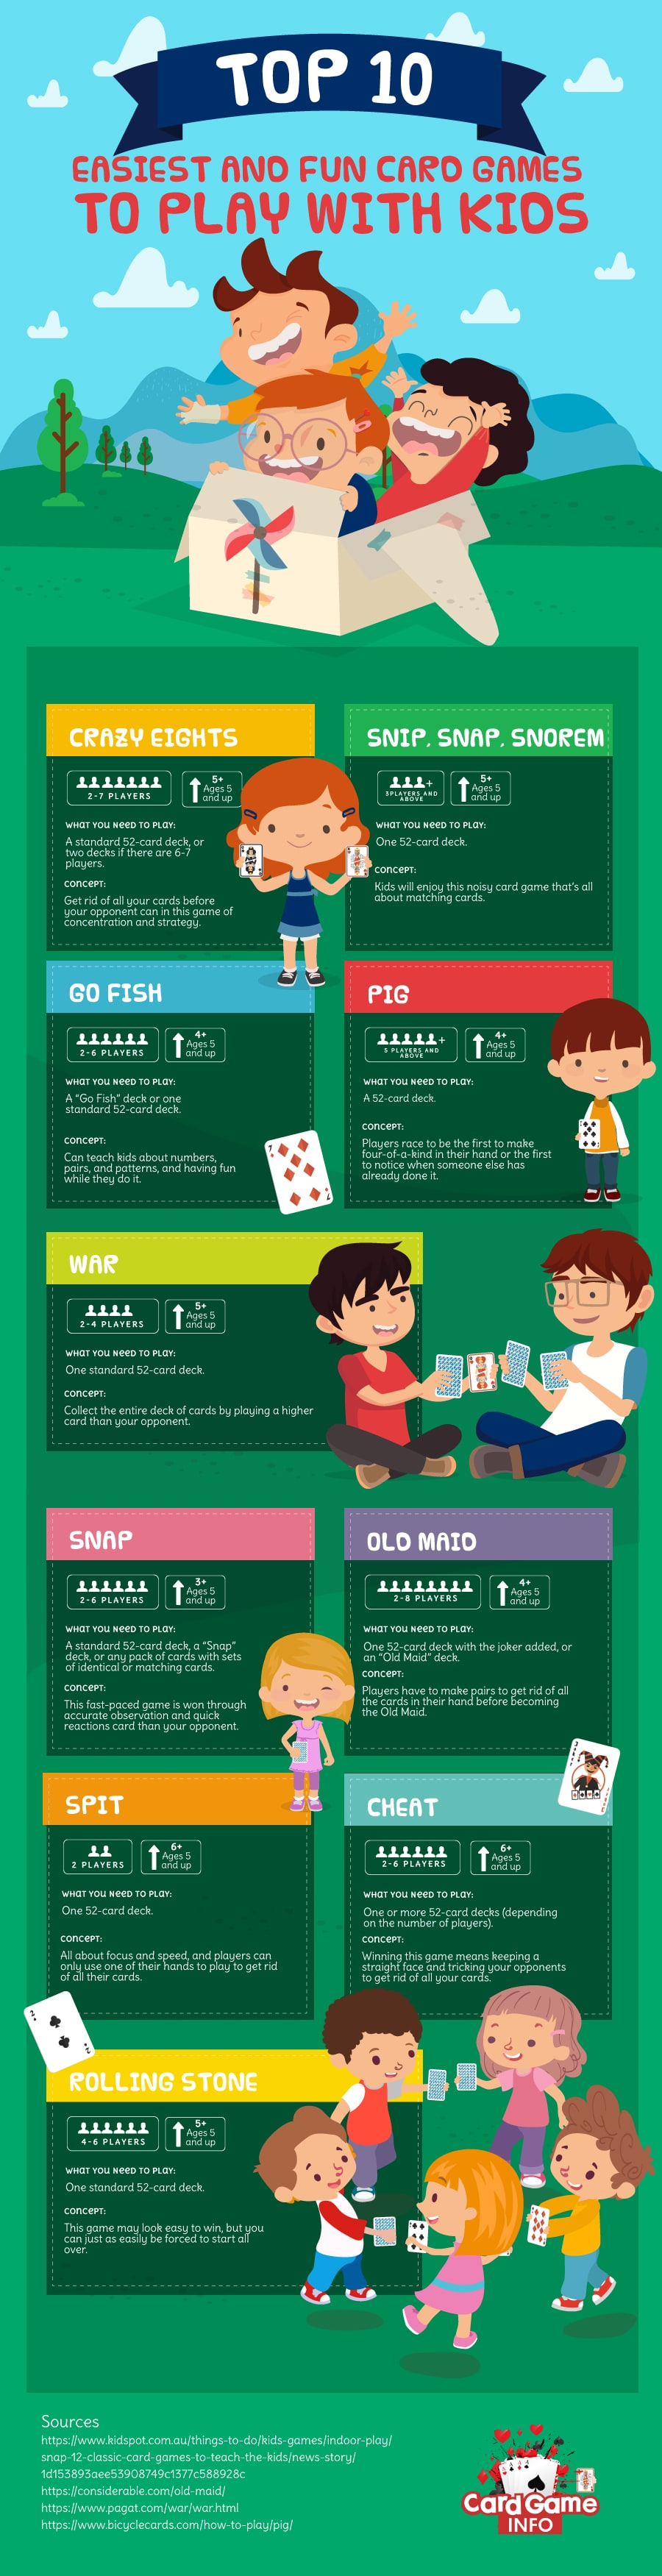 Top 10 Easiest and Fun Card Games